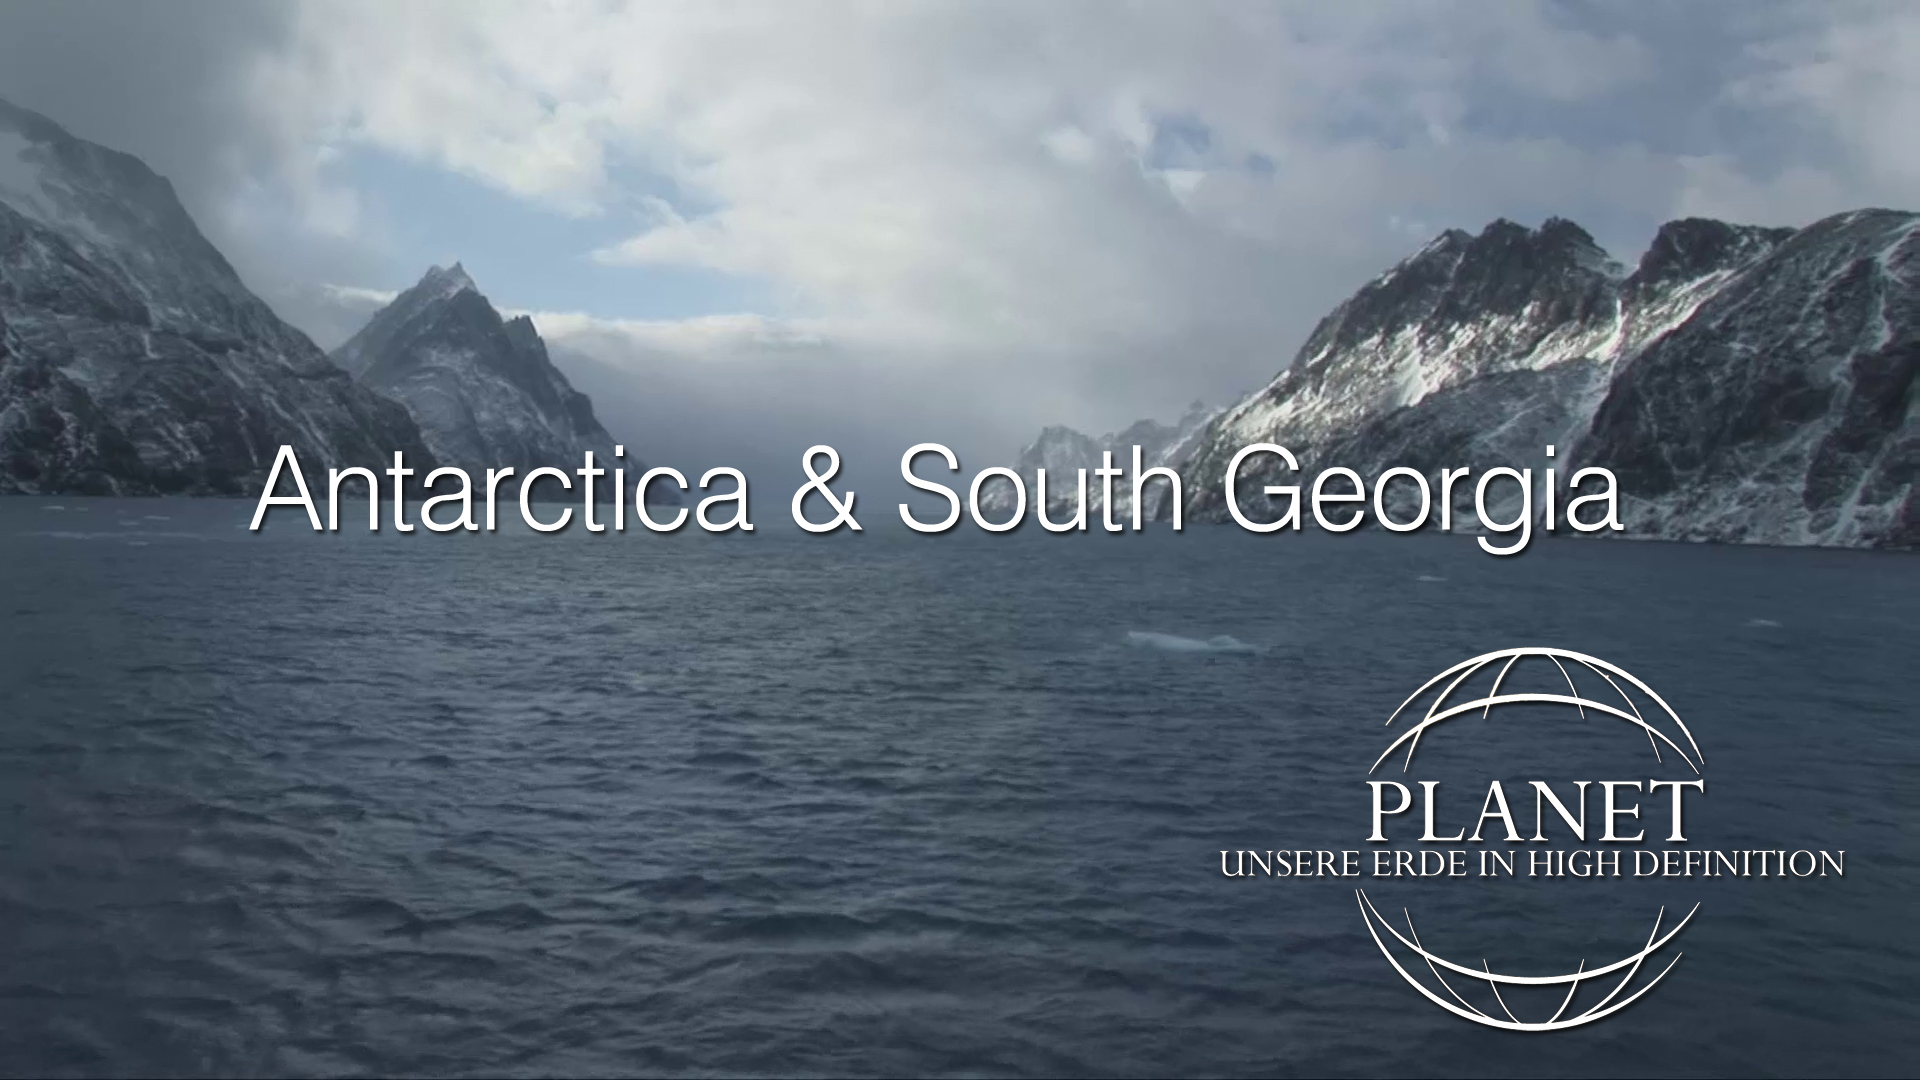 Planet - Antarctica & South Georgia